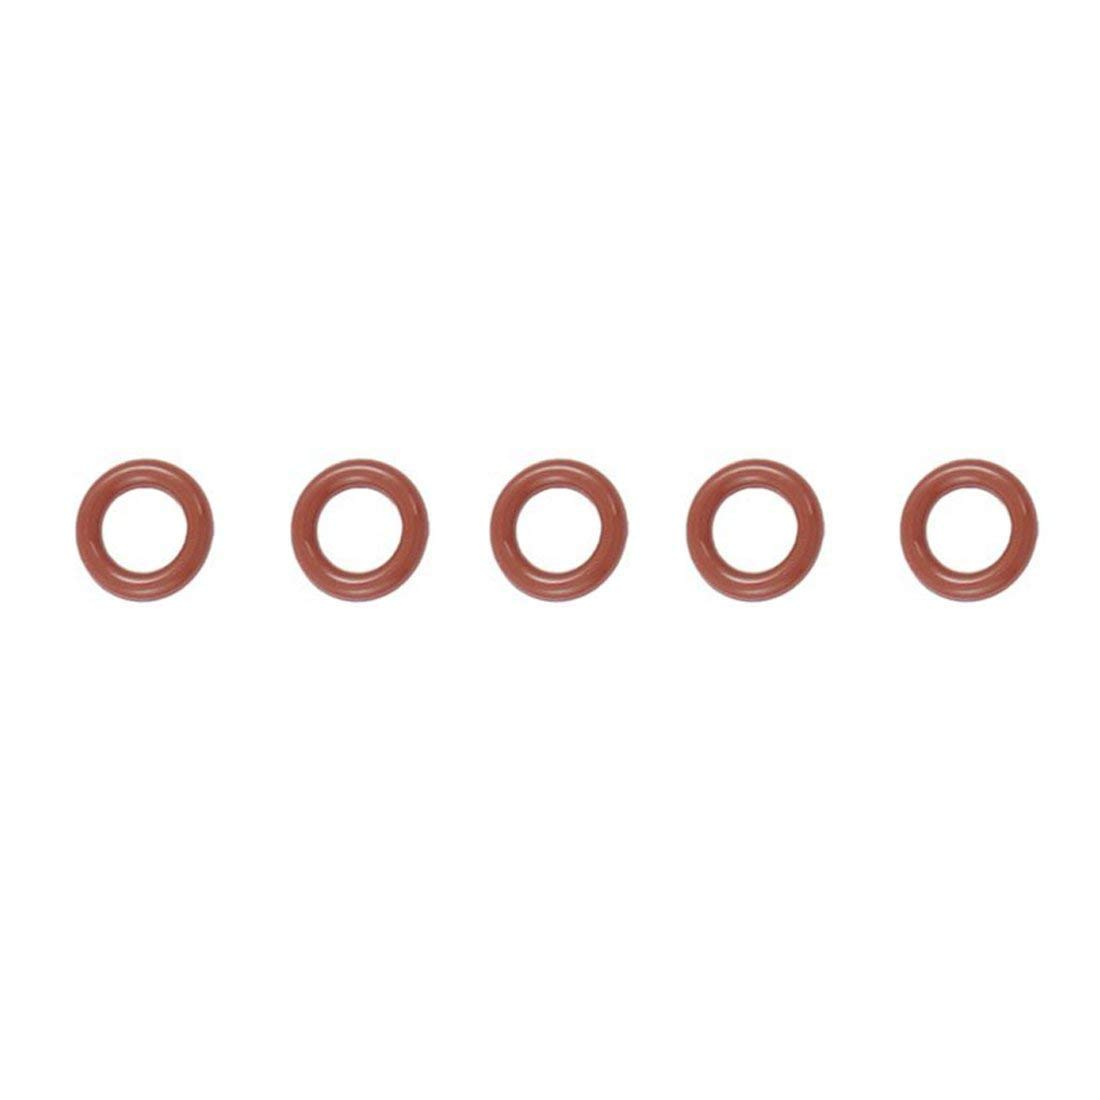 Yevison 50 pcs 12 mm x 2.5 mm x 7 mm Dark Red Silicone O-rings Oil Seal Washers gasketet Durable and Useful by Yevison